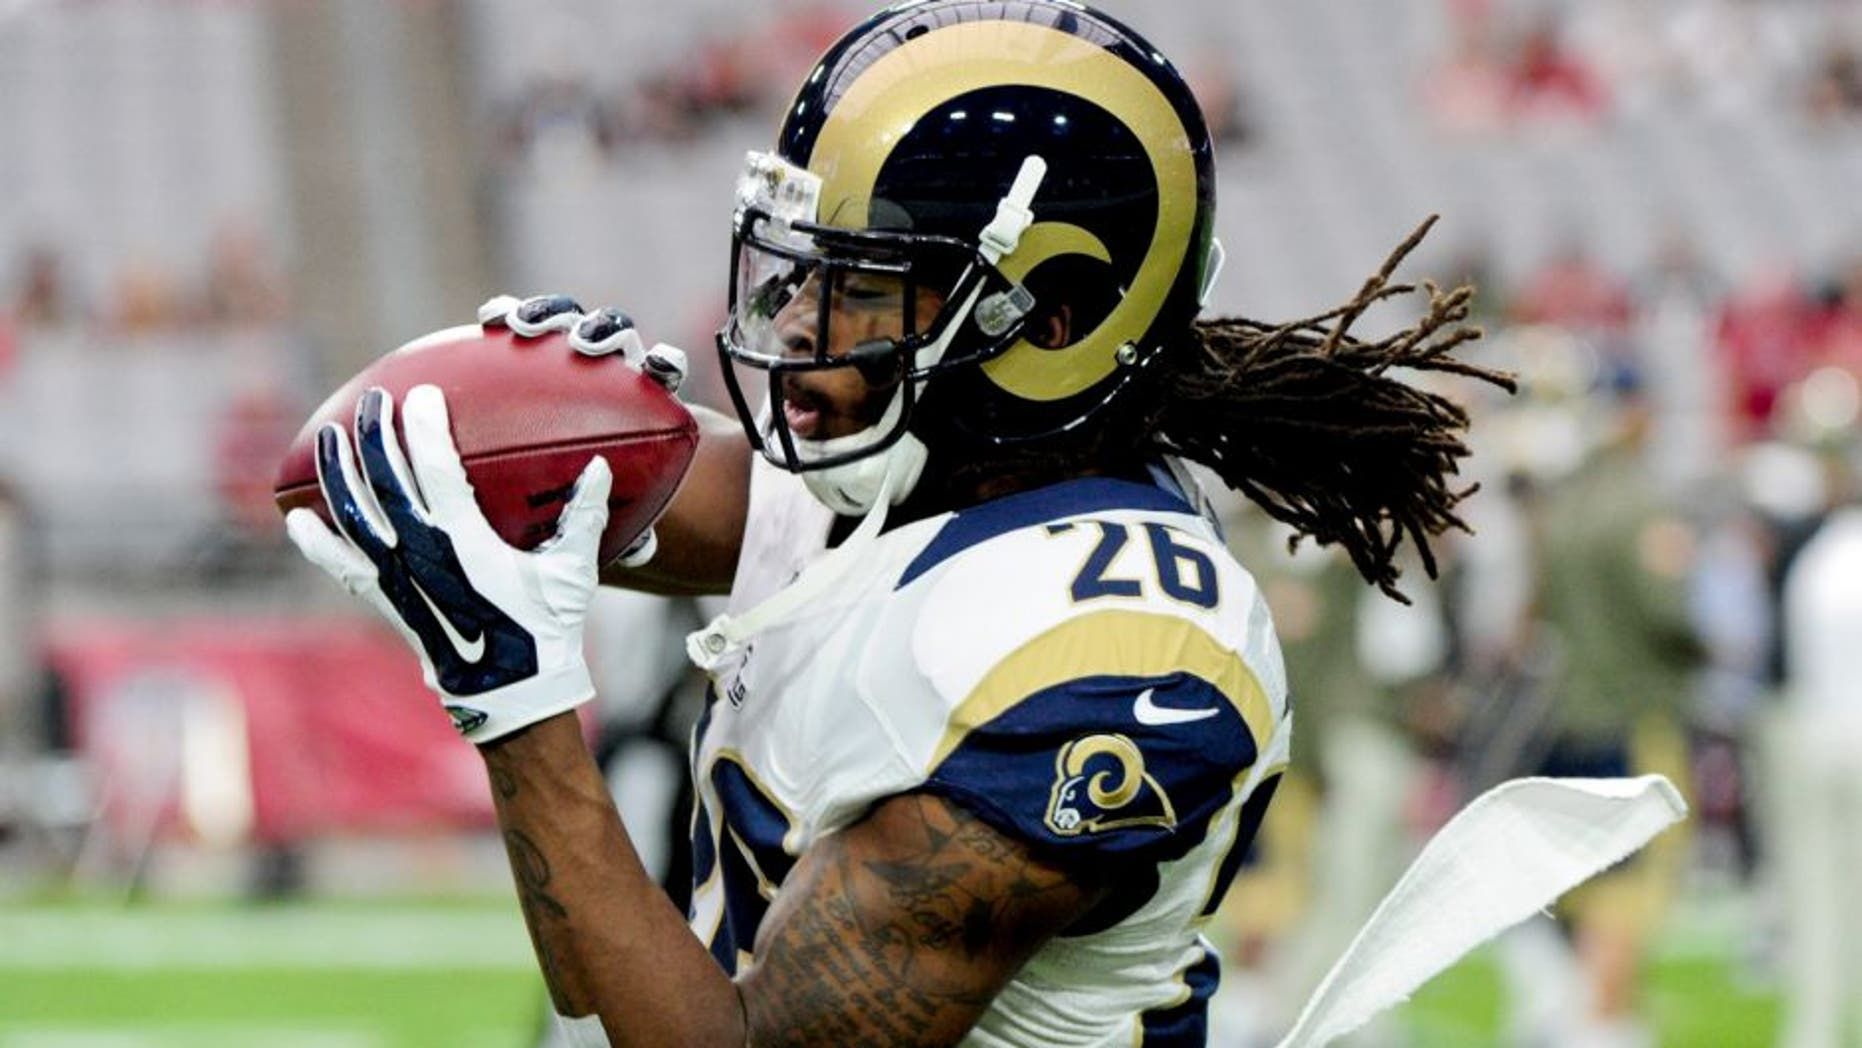 Nov 9, 2014; Glendale, AZ, USA; St. Louis Rams strong safety Mark Barron (26) warms up prior to the game against the Arizona Cardinals at University of Phoenix Stadium. Mandatory Credit: Matt Kartozian-USA TODAY Sports